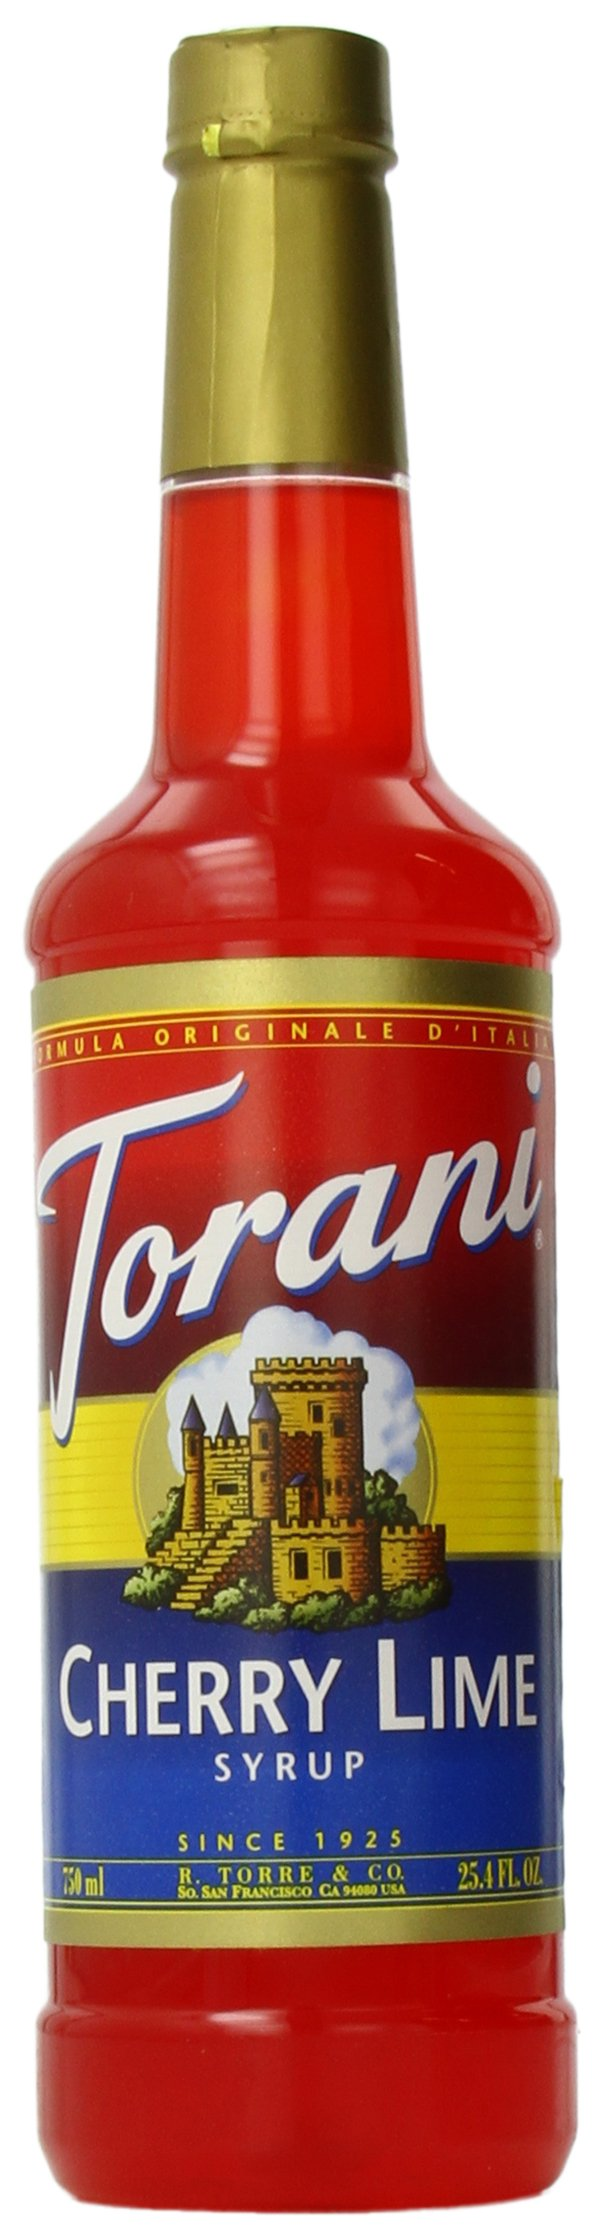 Torani Syrup, Cherry Lime, 25.4 Ounce (Pack of 4)